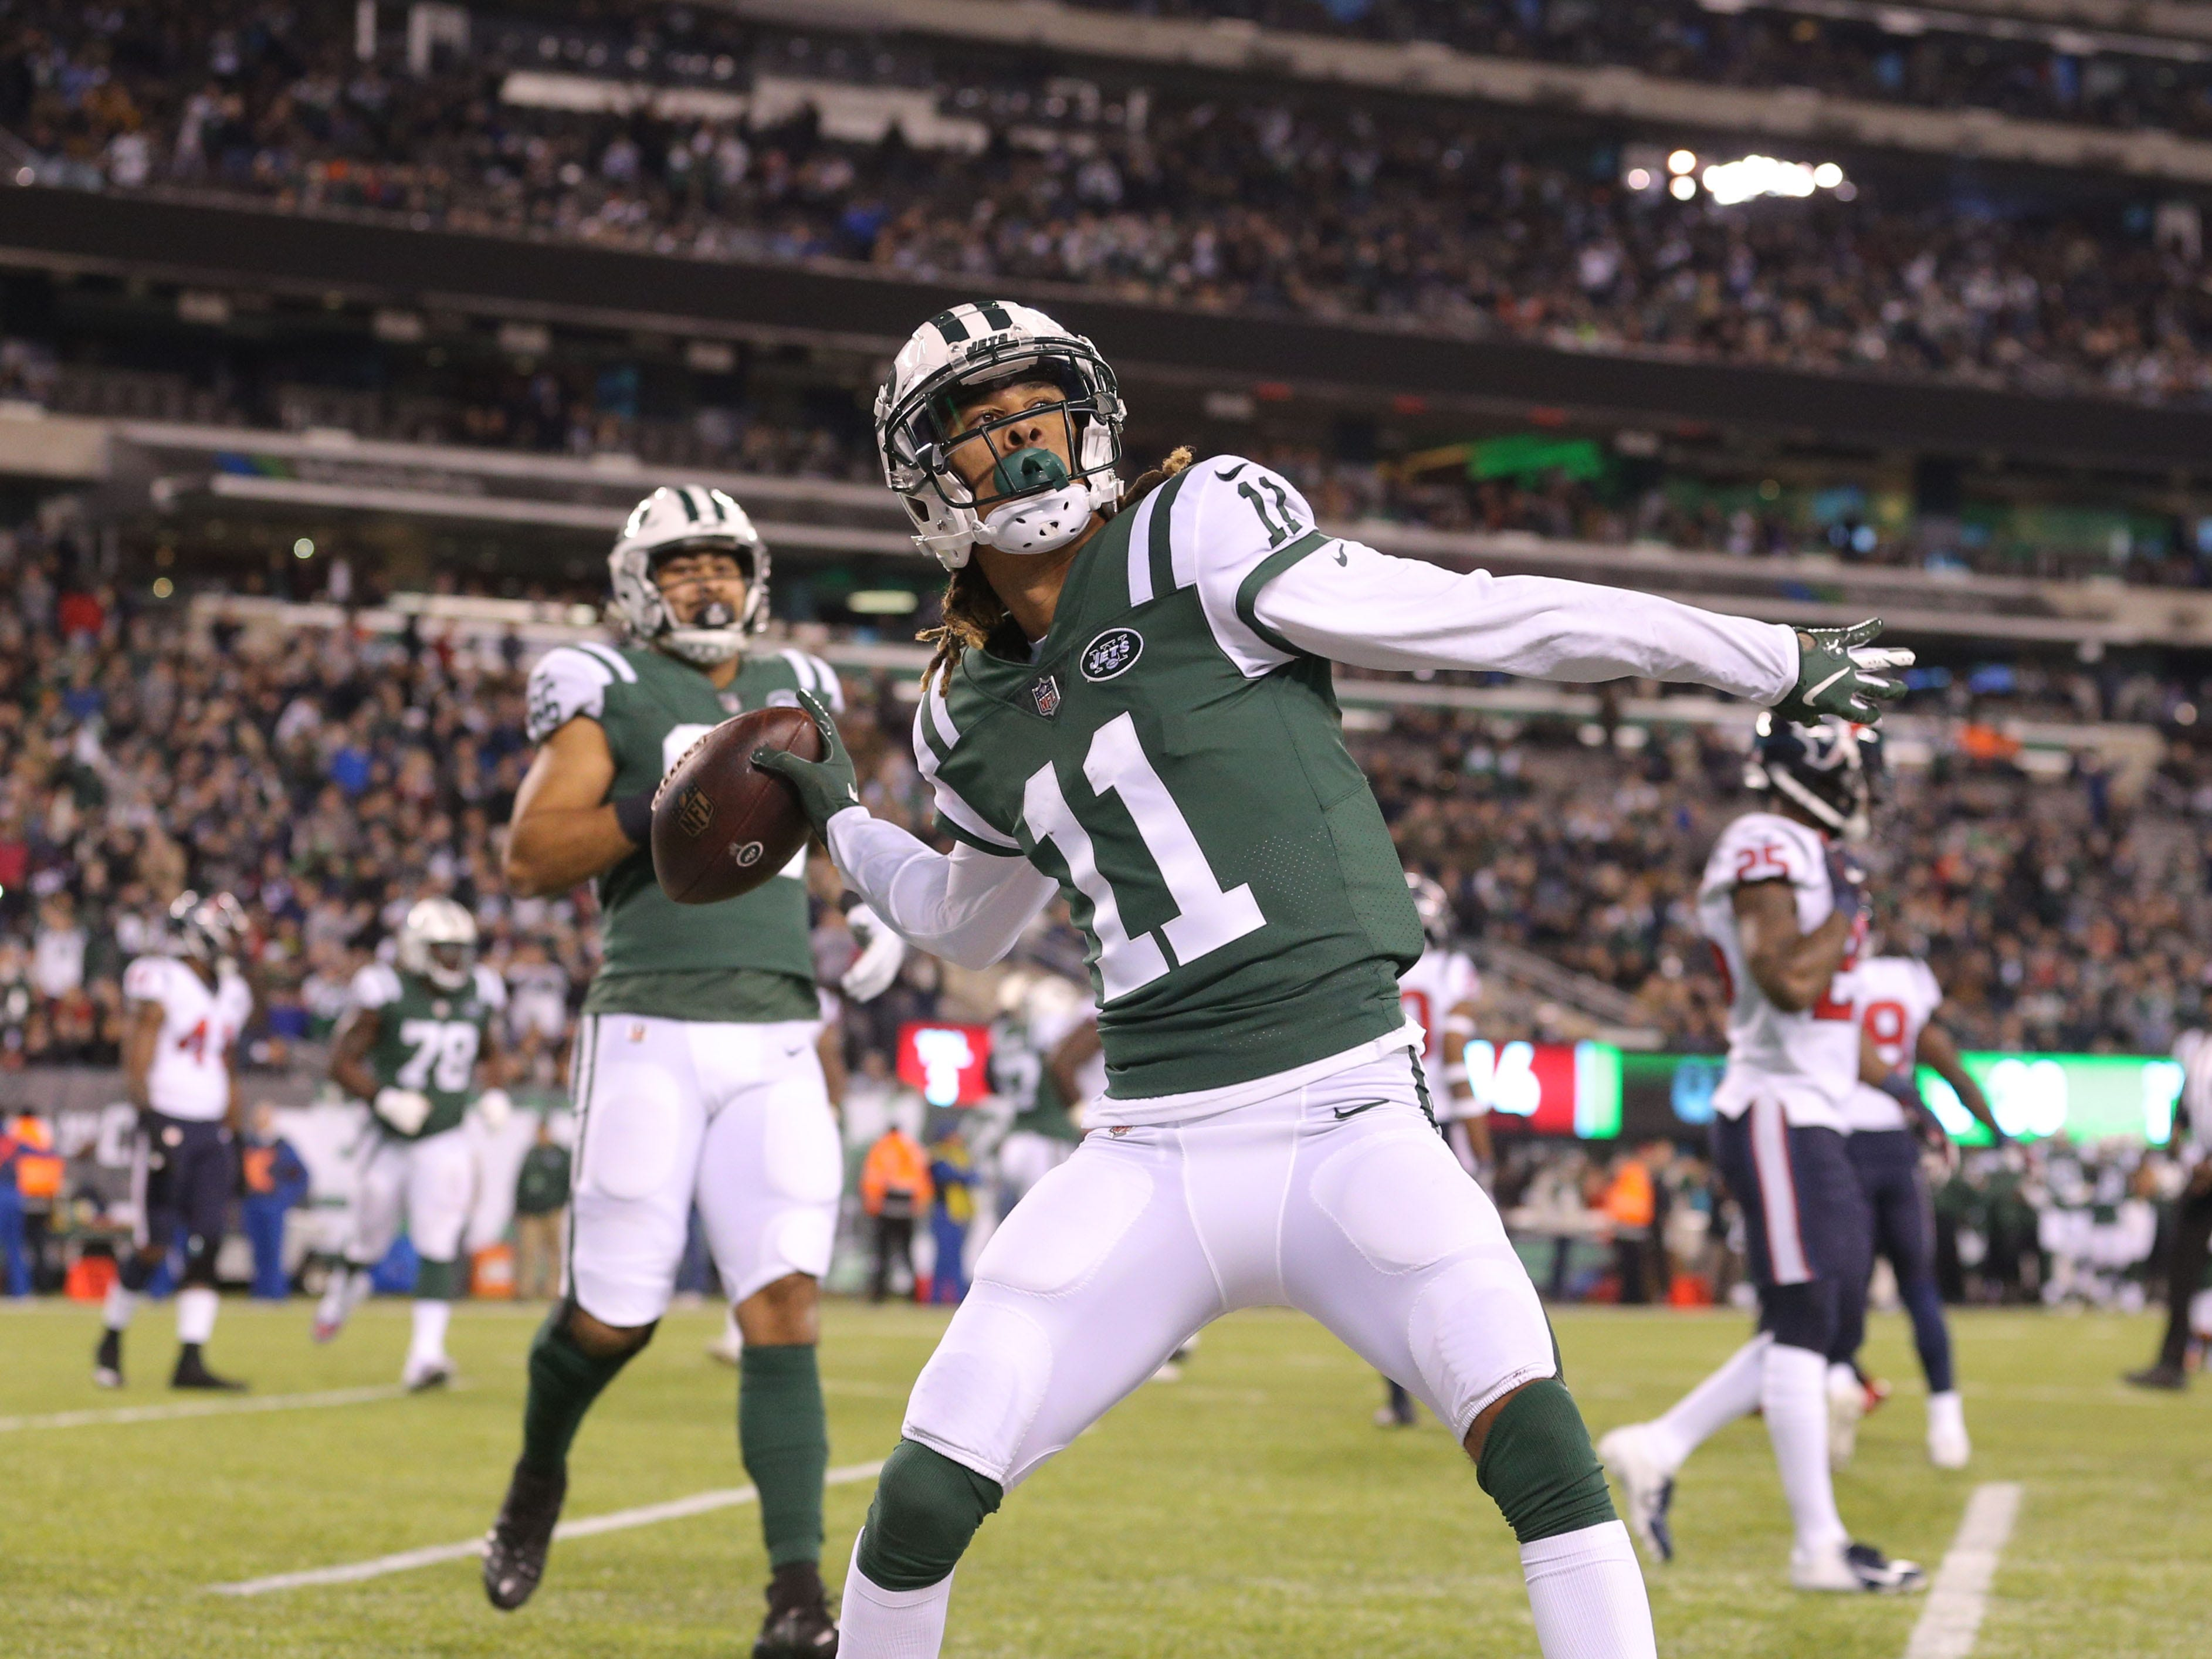 New York Jets wide receiver Robby Anderson (11) celebrates his touchdown against the Houston Texans during the second quarter at MetLife Stadium.